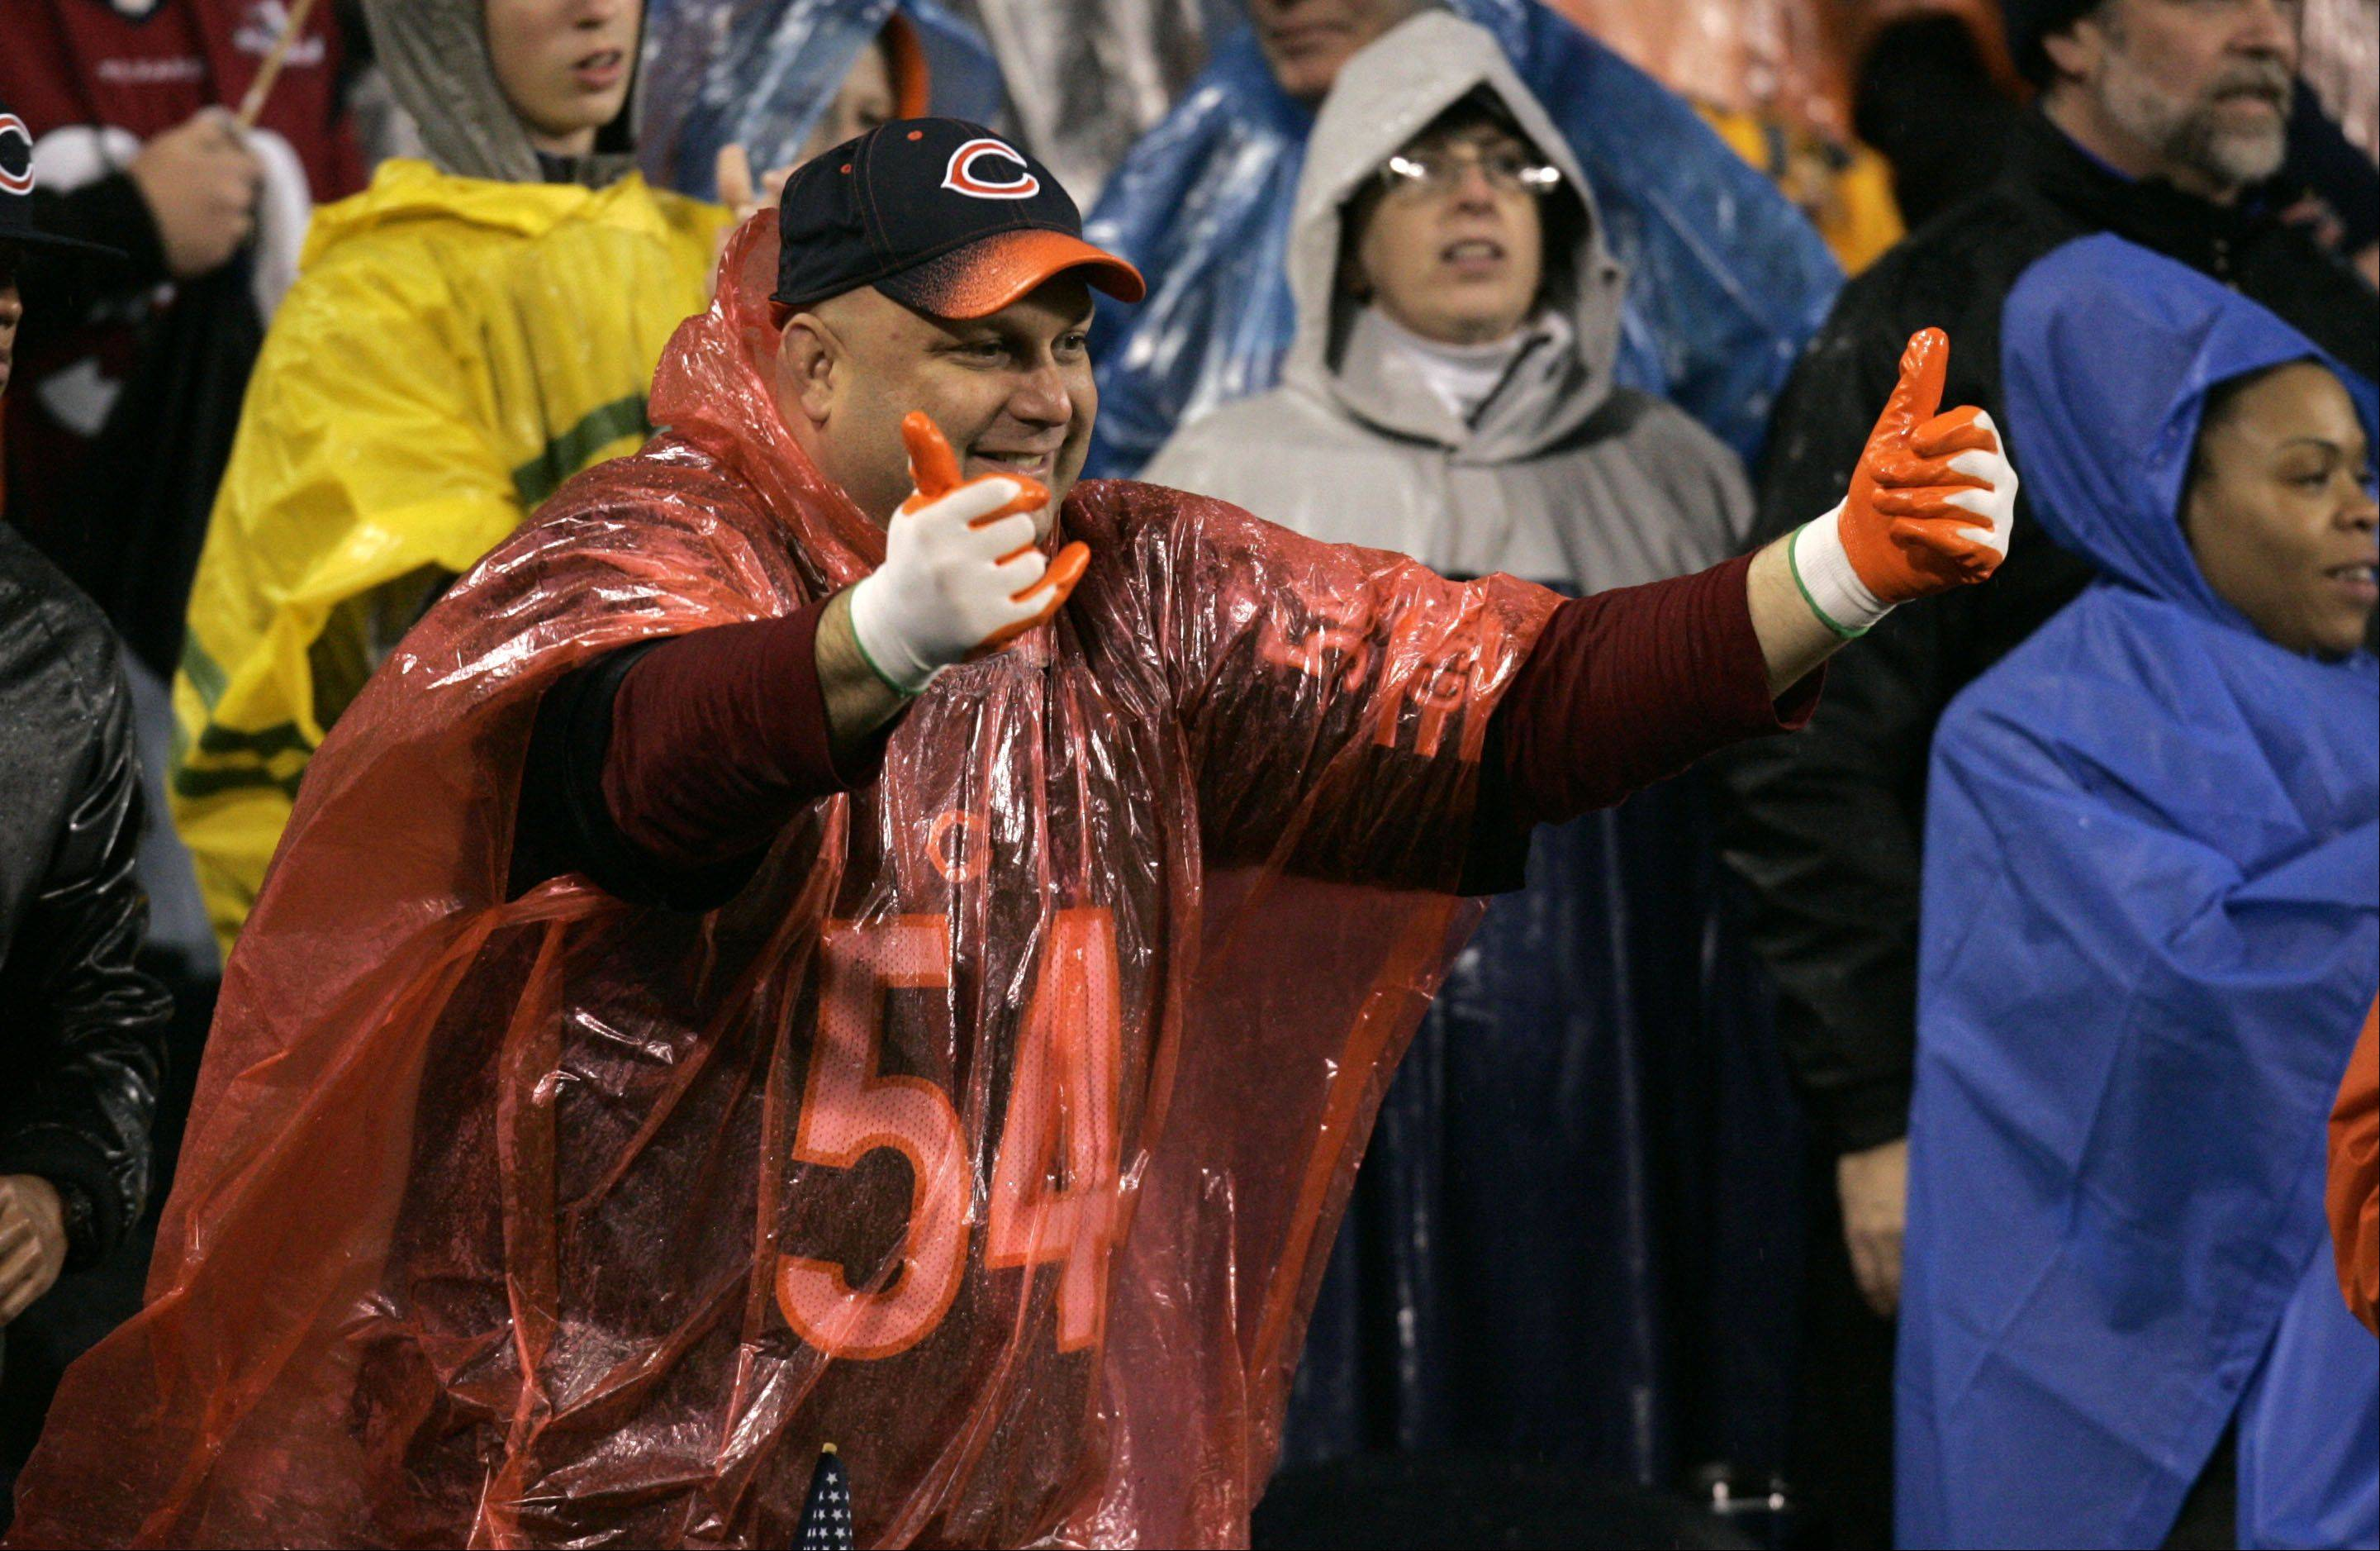 A bears fan cheers his team during the game Sunday at Soldier Field in Chicago.